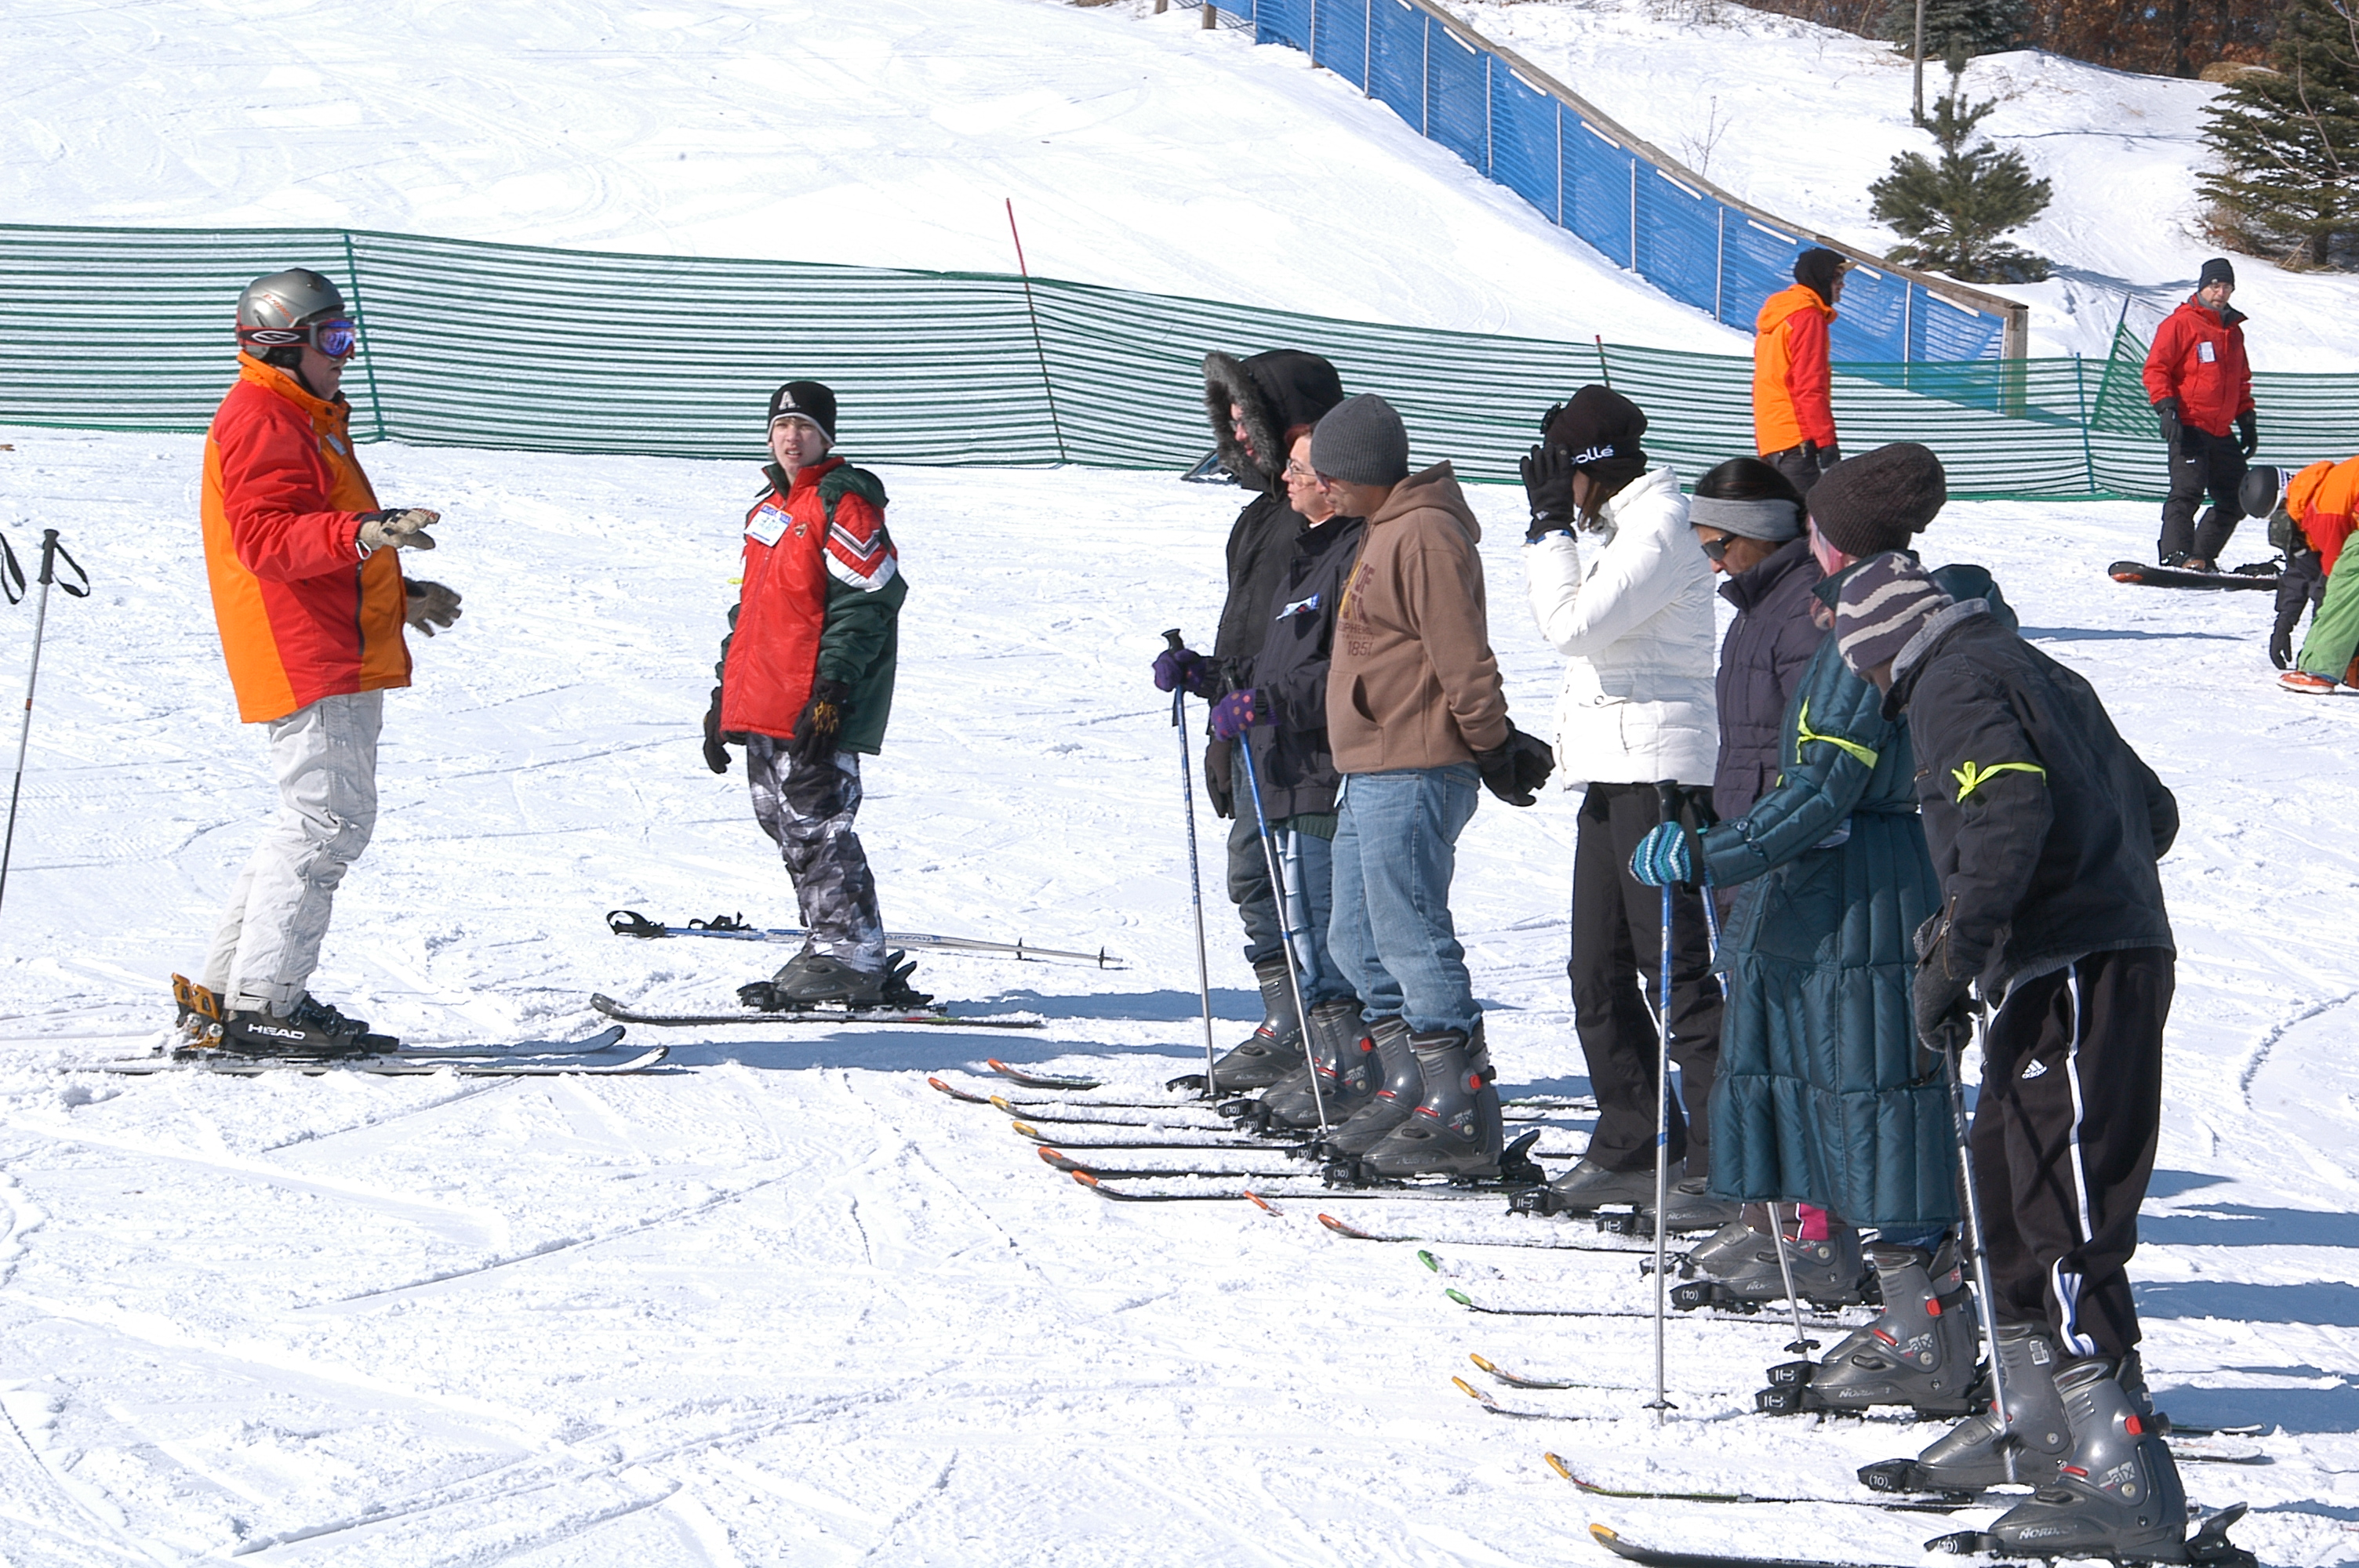 people skiing on hill